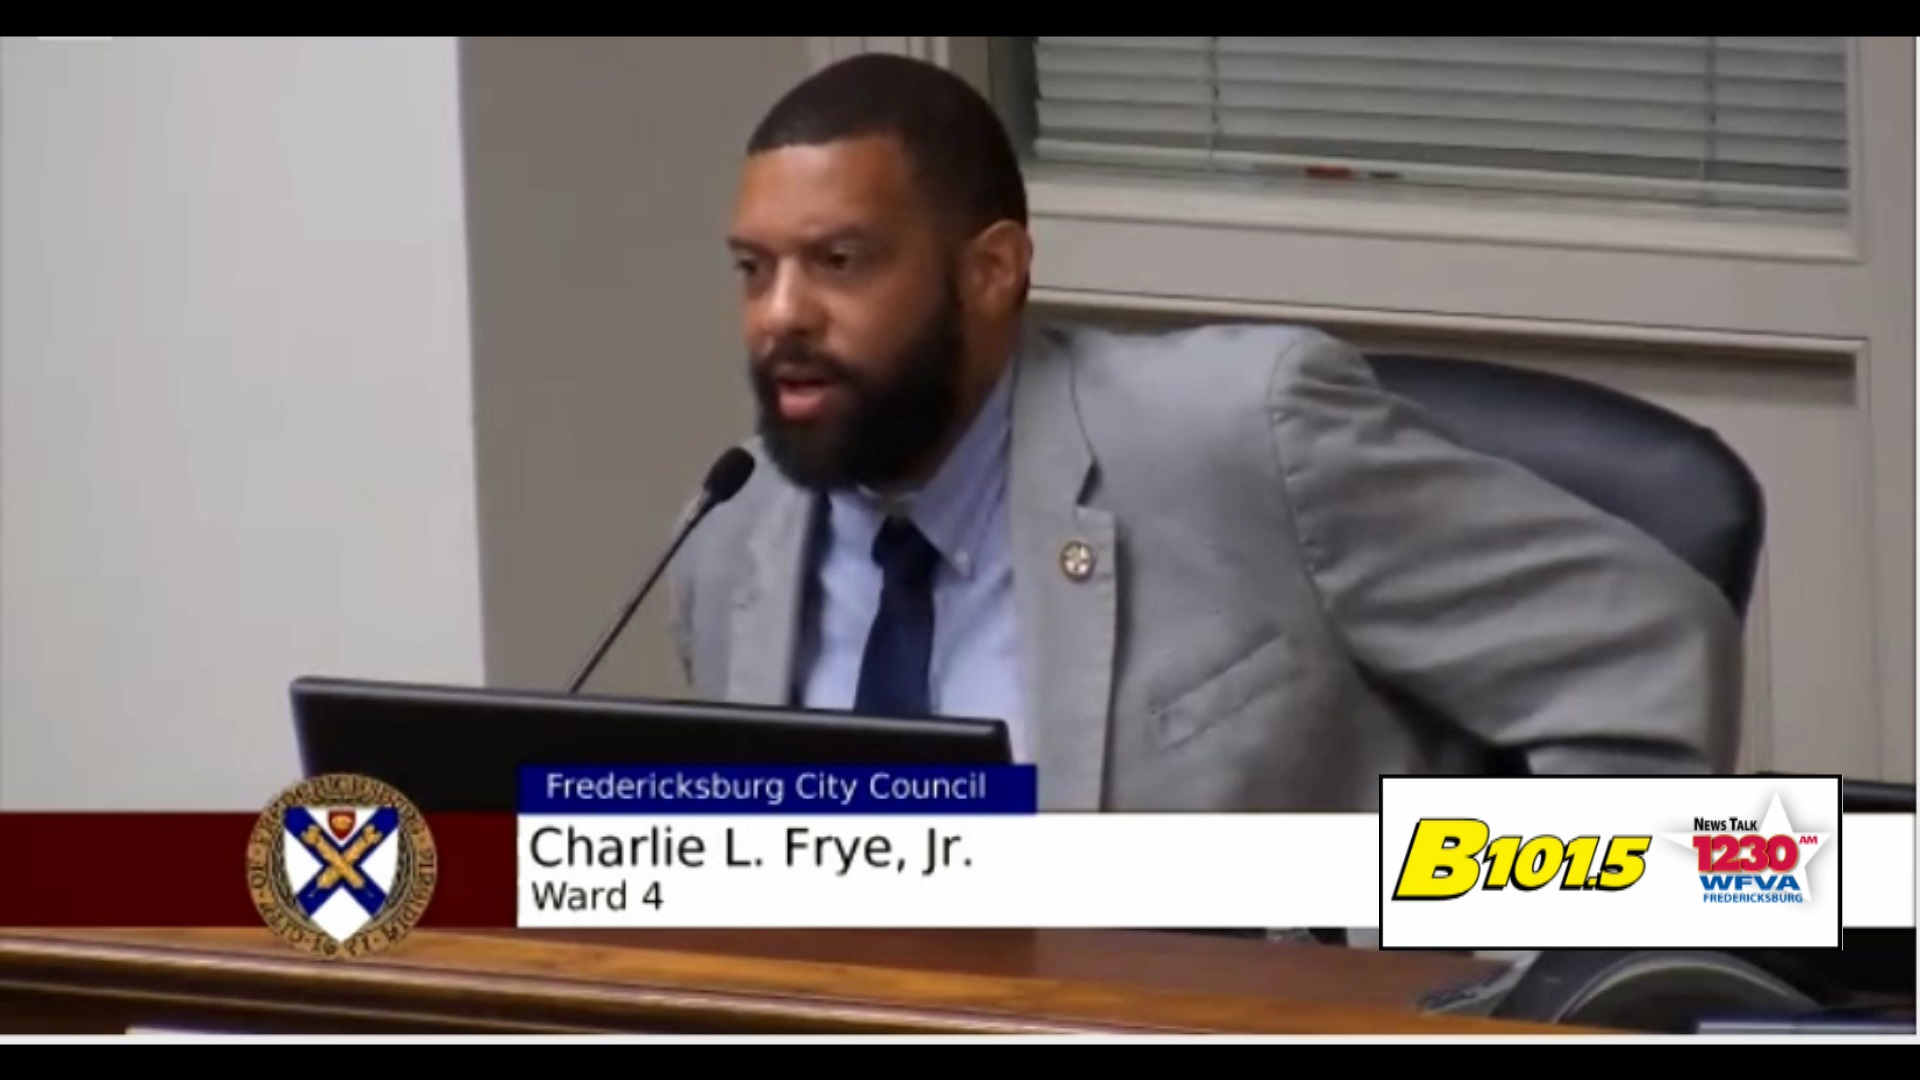 Councilman Frye on the impact Midnight Madness had on him as a teenager